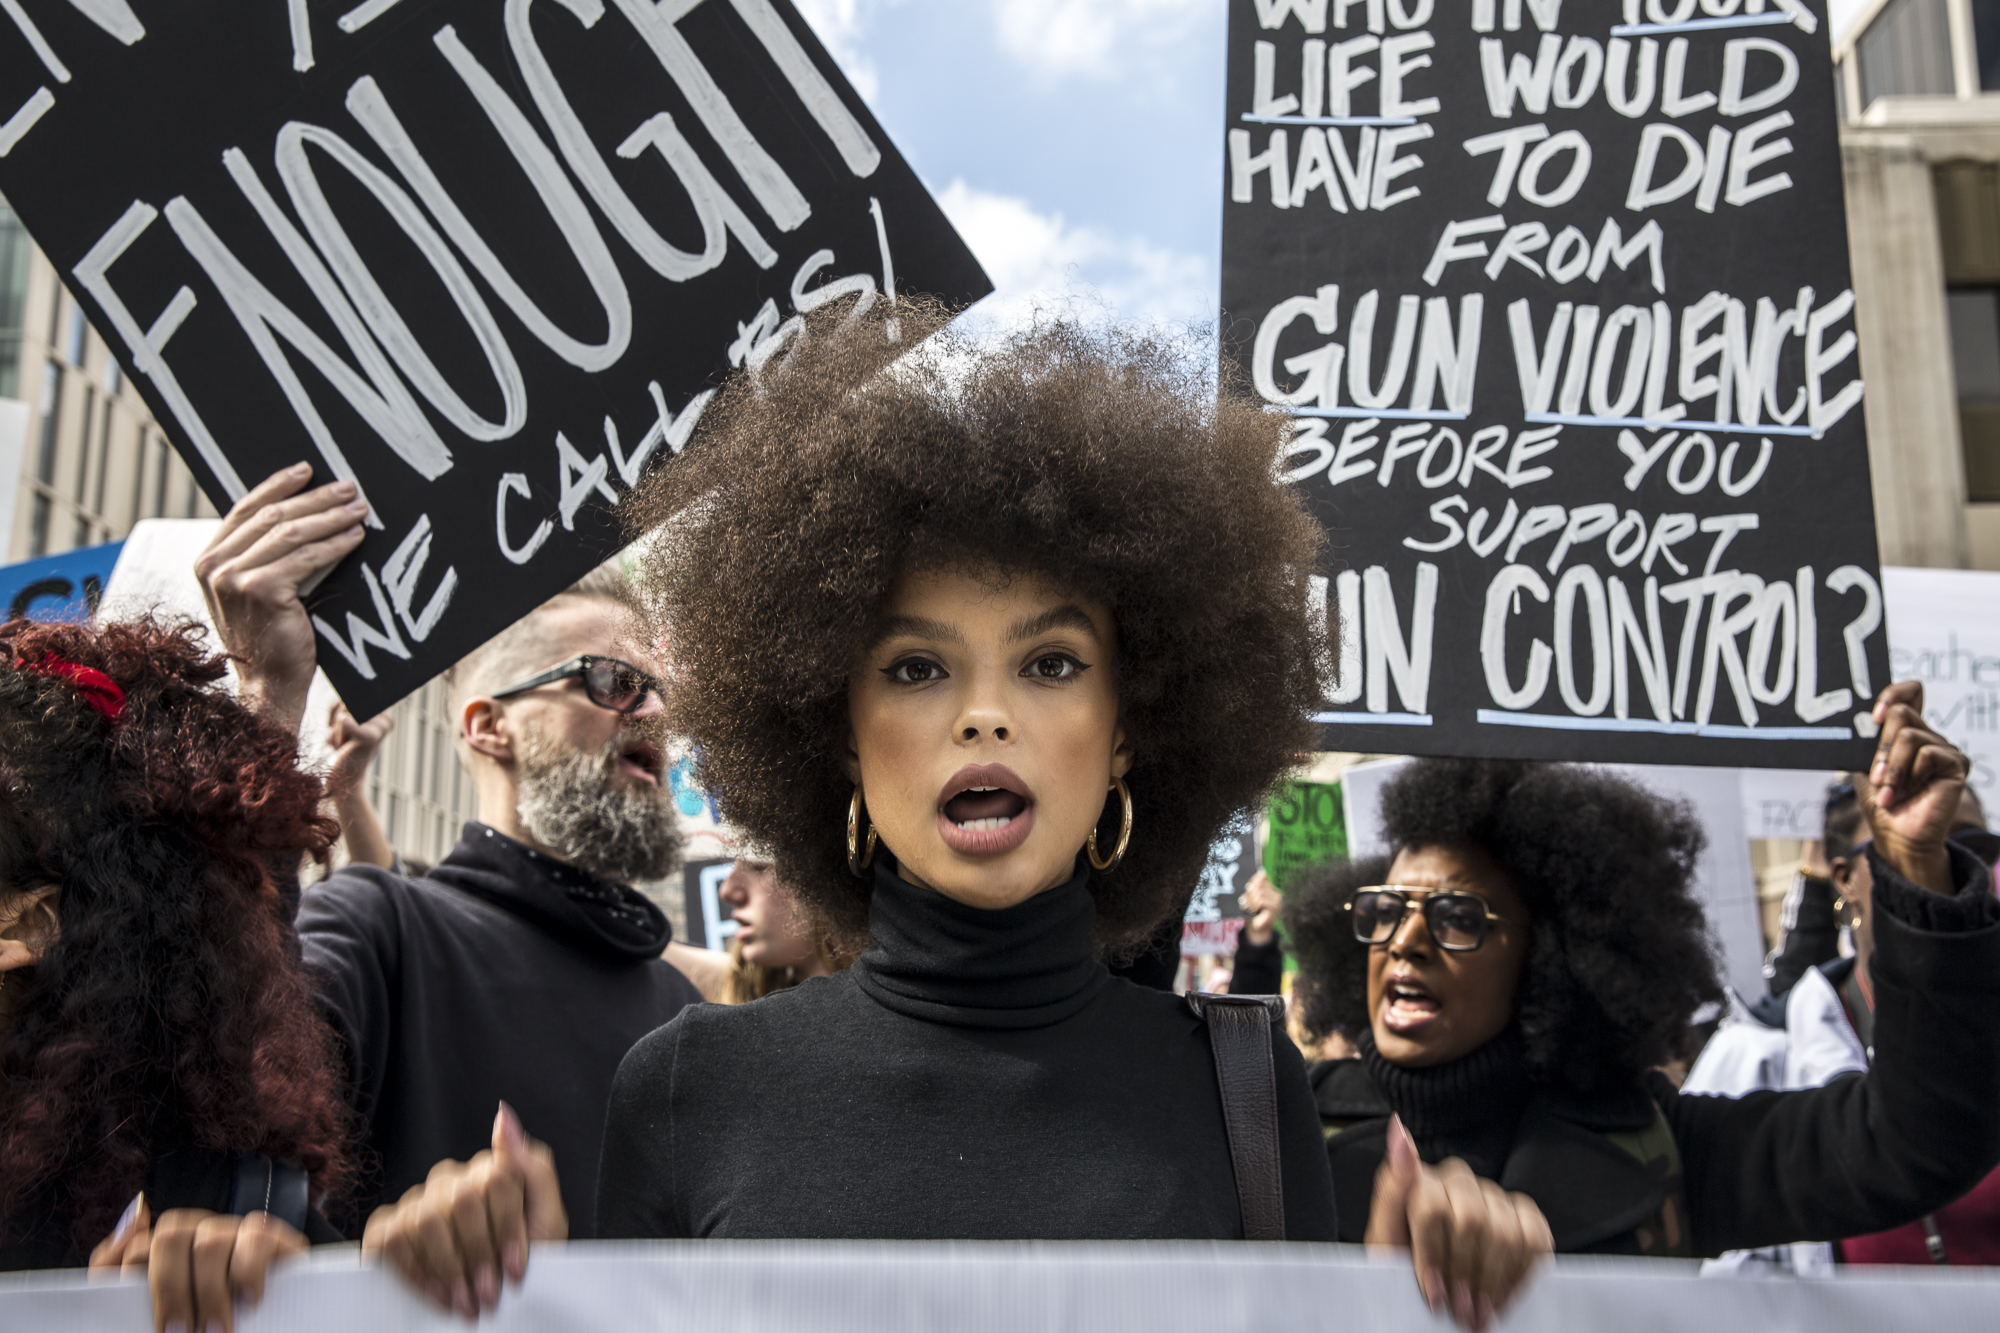 A March for Our Lives demonstrator, who wished to rename anonymous, leads the march that took place in front of Los Angeles City Hall, in Downtown Los Angeles, California on Saturday, March 24 2018. (Matthew Martin/Corsair Photo)